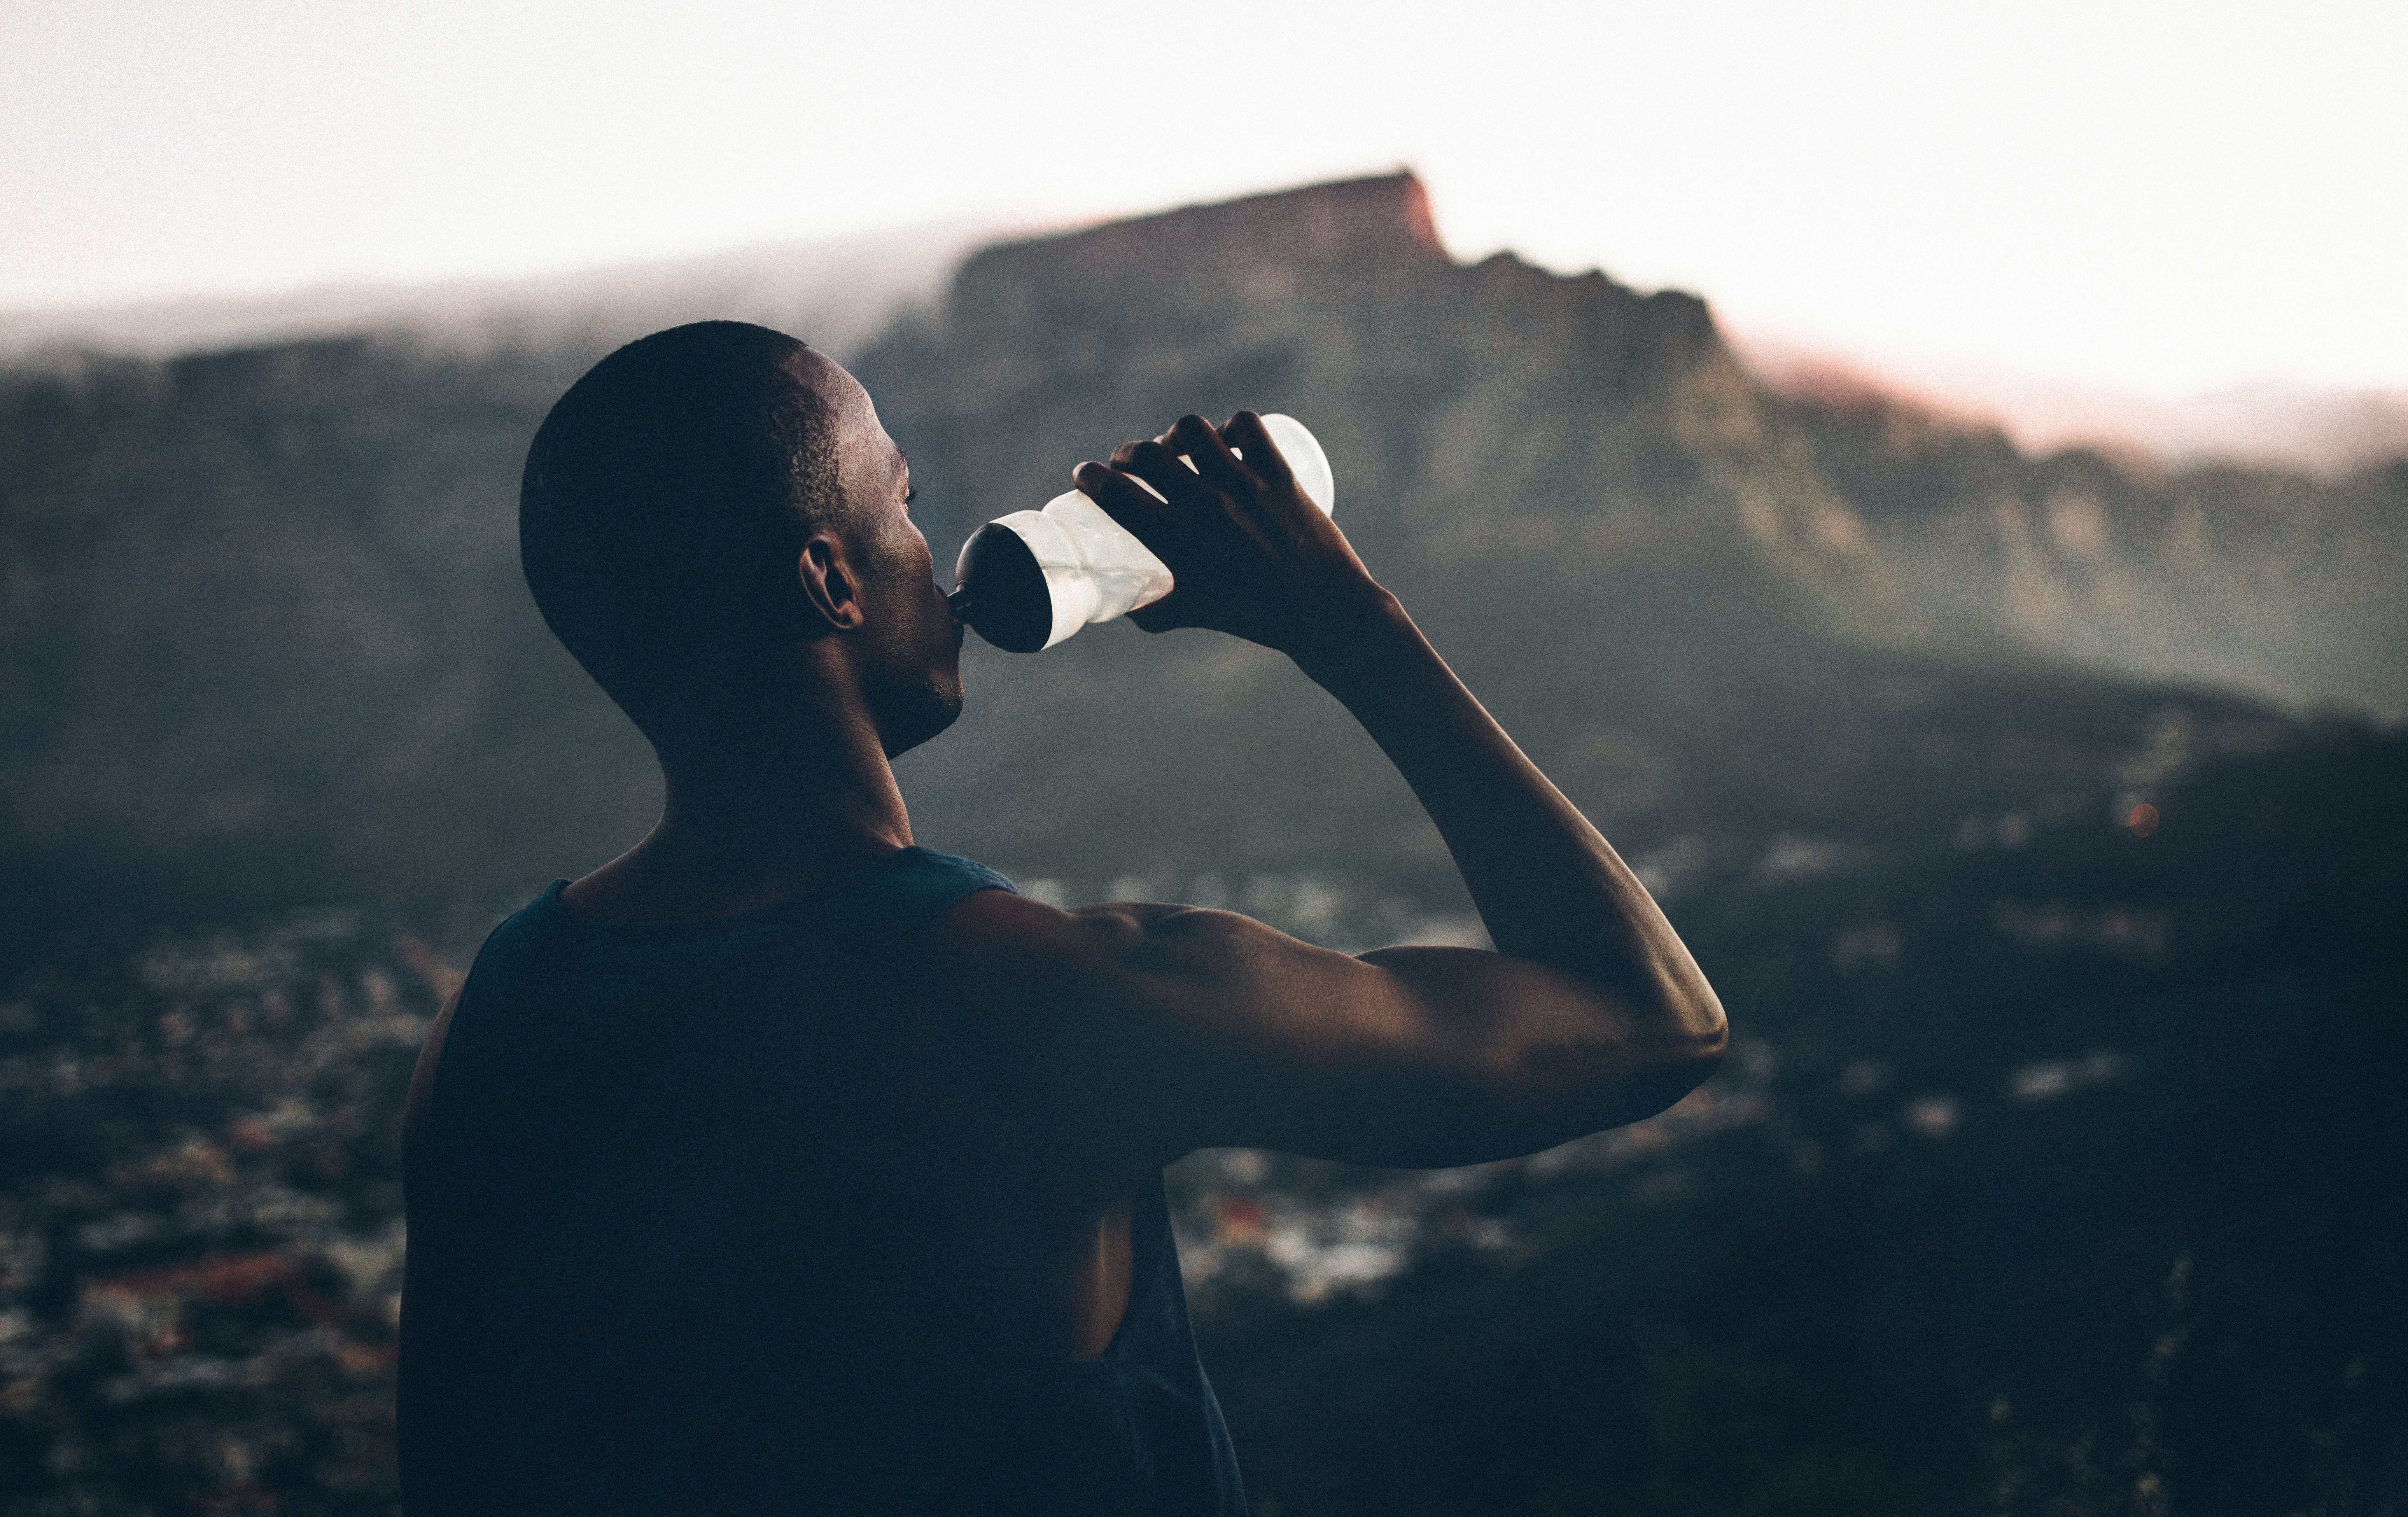 healthy fit african decent athlete drinking water after a fitness achievement with a great view of the mountain in the background in the late afternoon